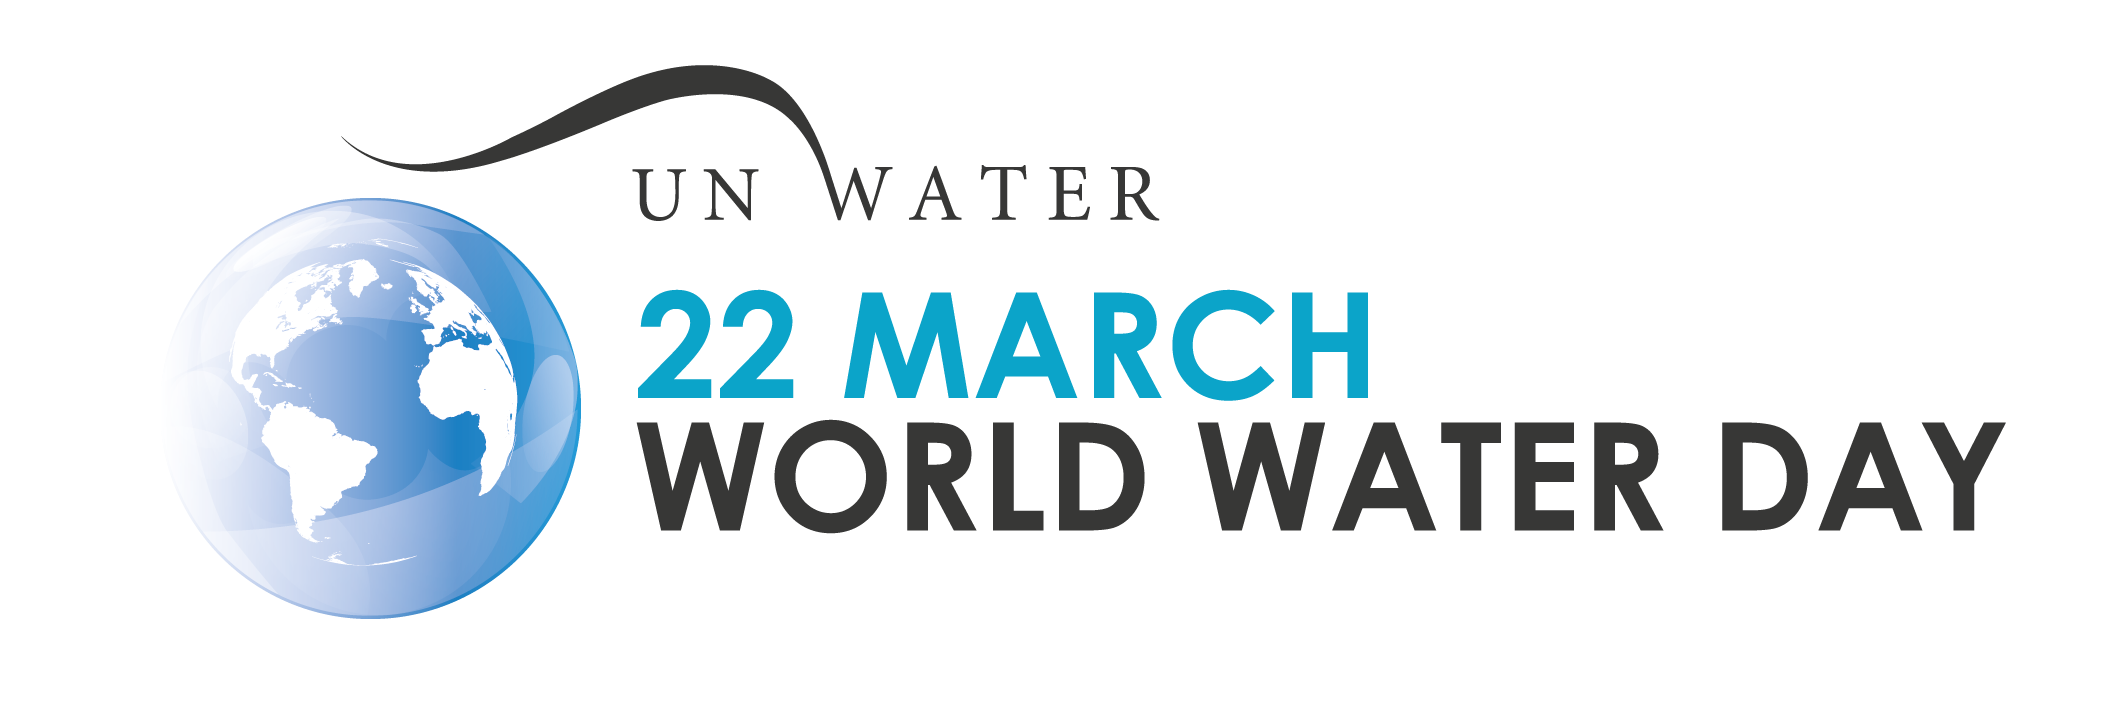 Word Water Day